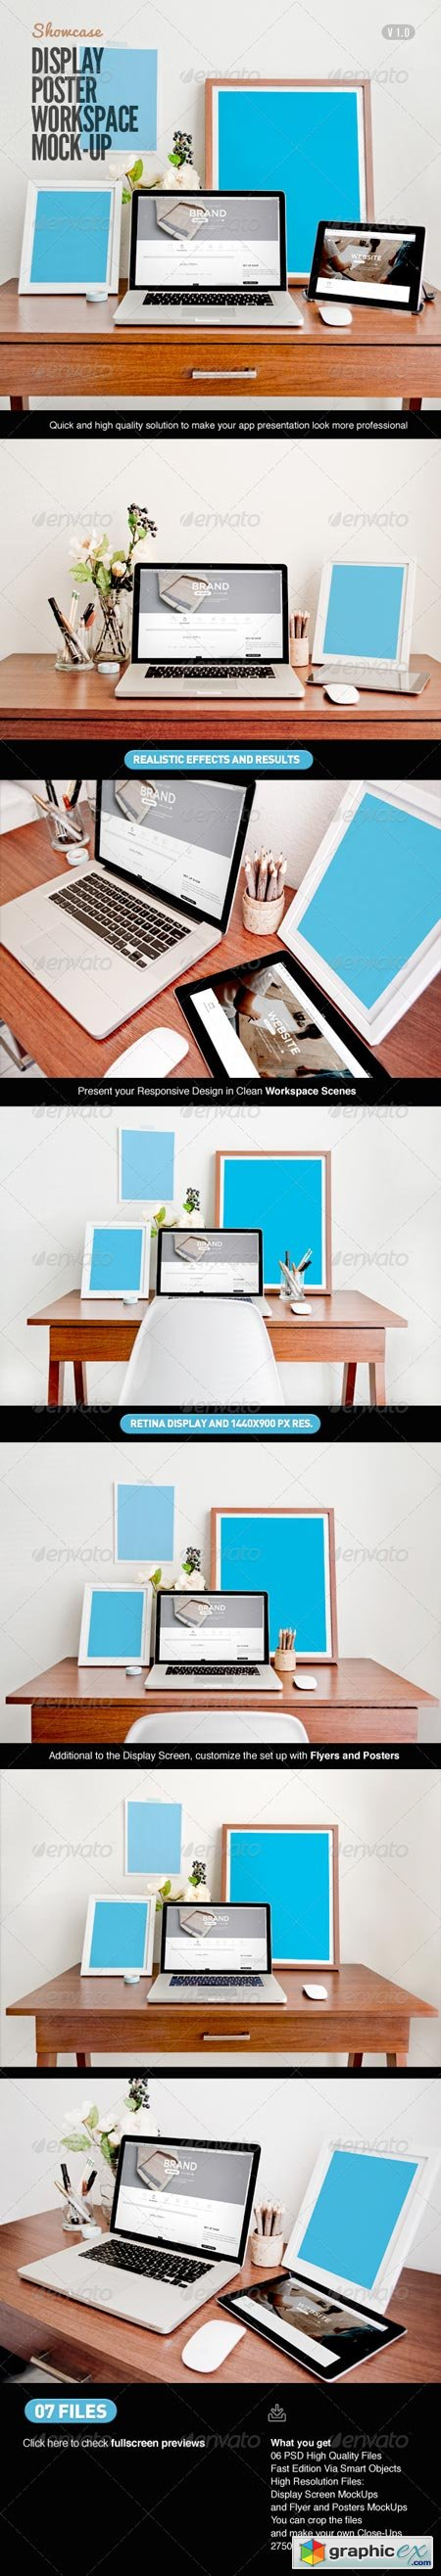 Display Poster Workspace Mock-Up 7766138